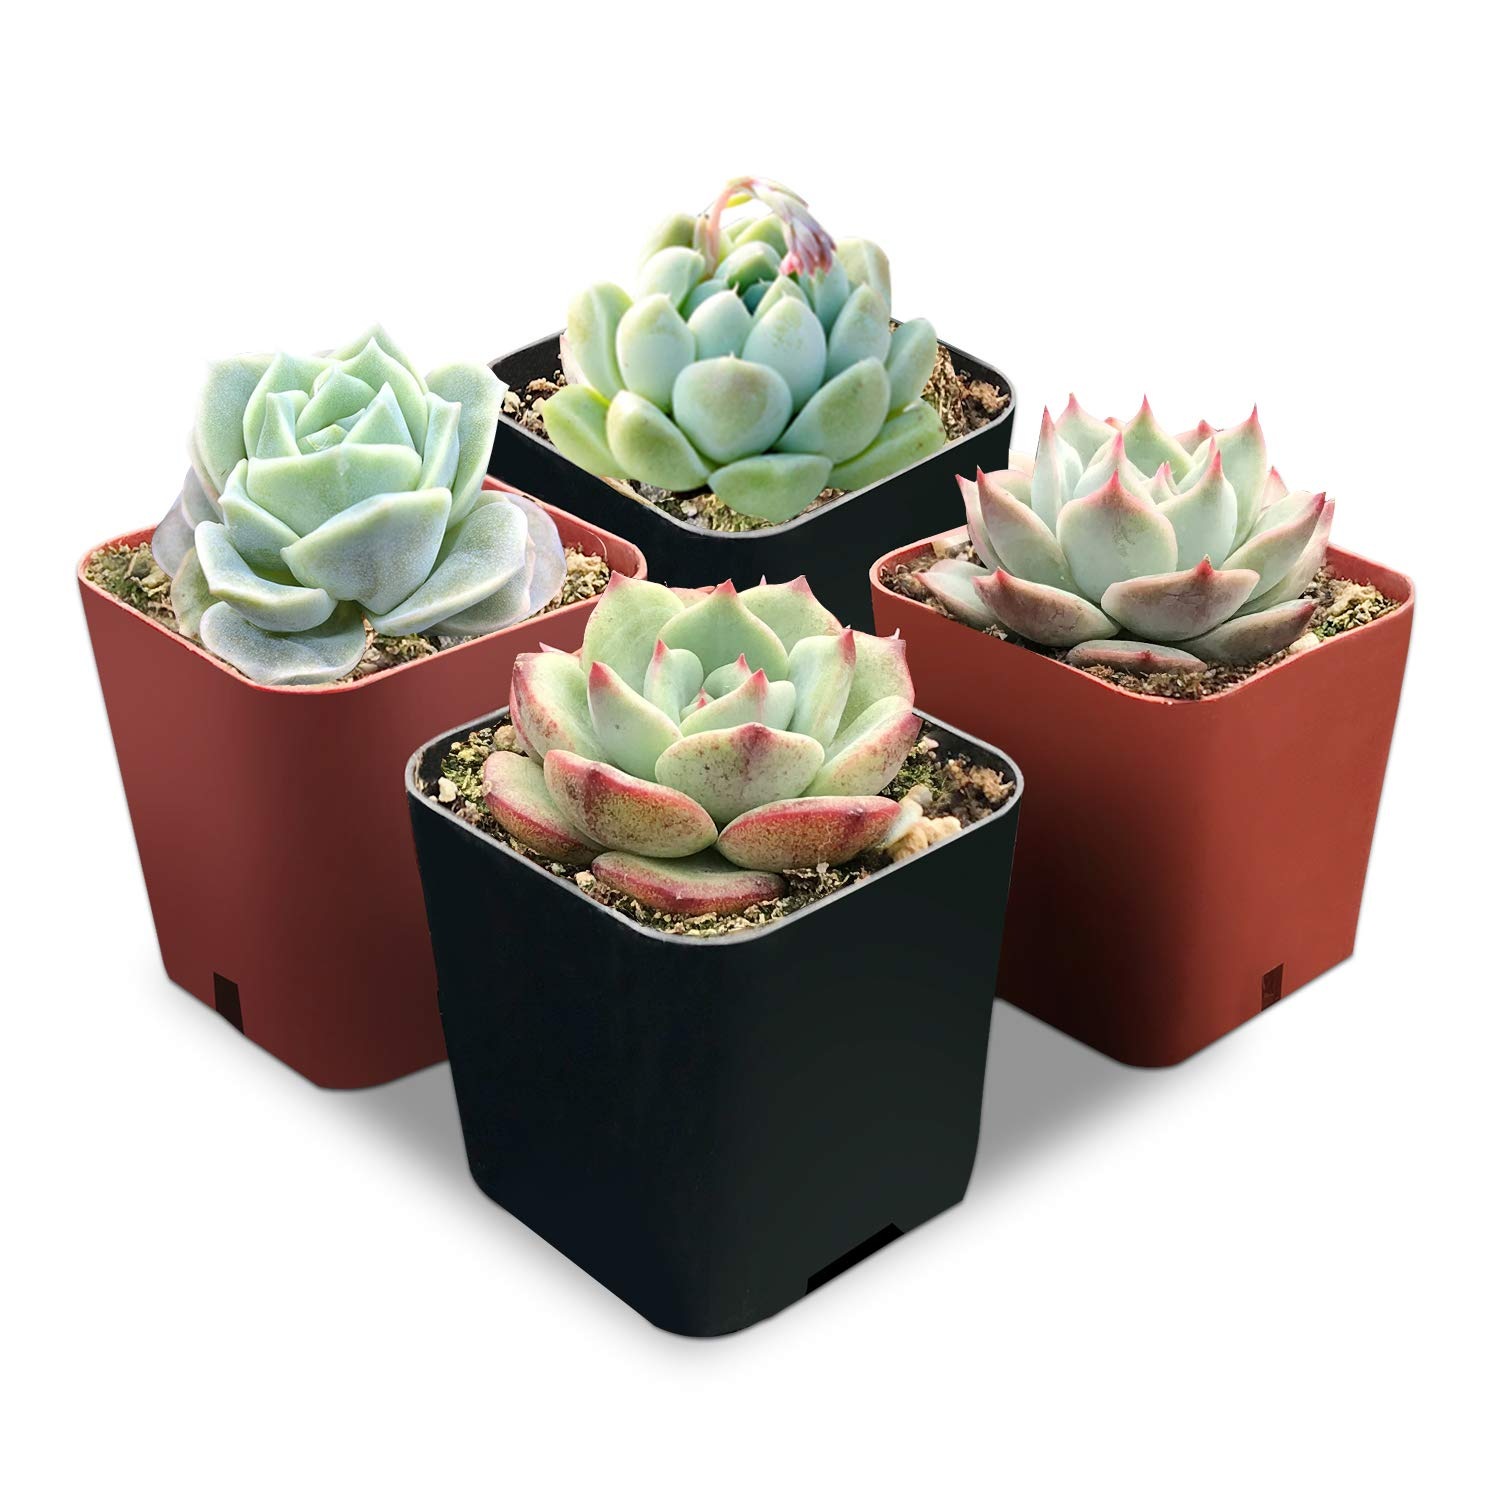 Succulent Plants, Assorted Rosettes, Fully Rooted in 2'' Planter Pots with Soil, Rare Varieties, Unique Real Live Indoor Succulents/Cactus Décor by The Next Gardener (4 Assorted Pack.)